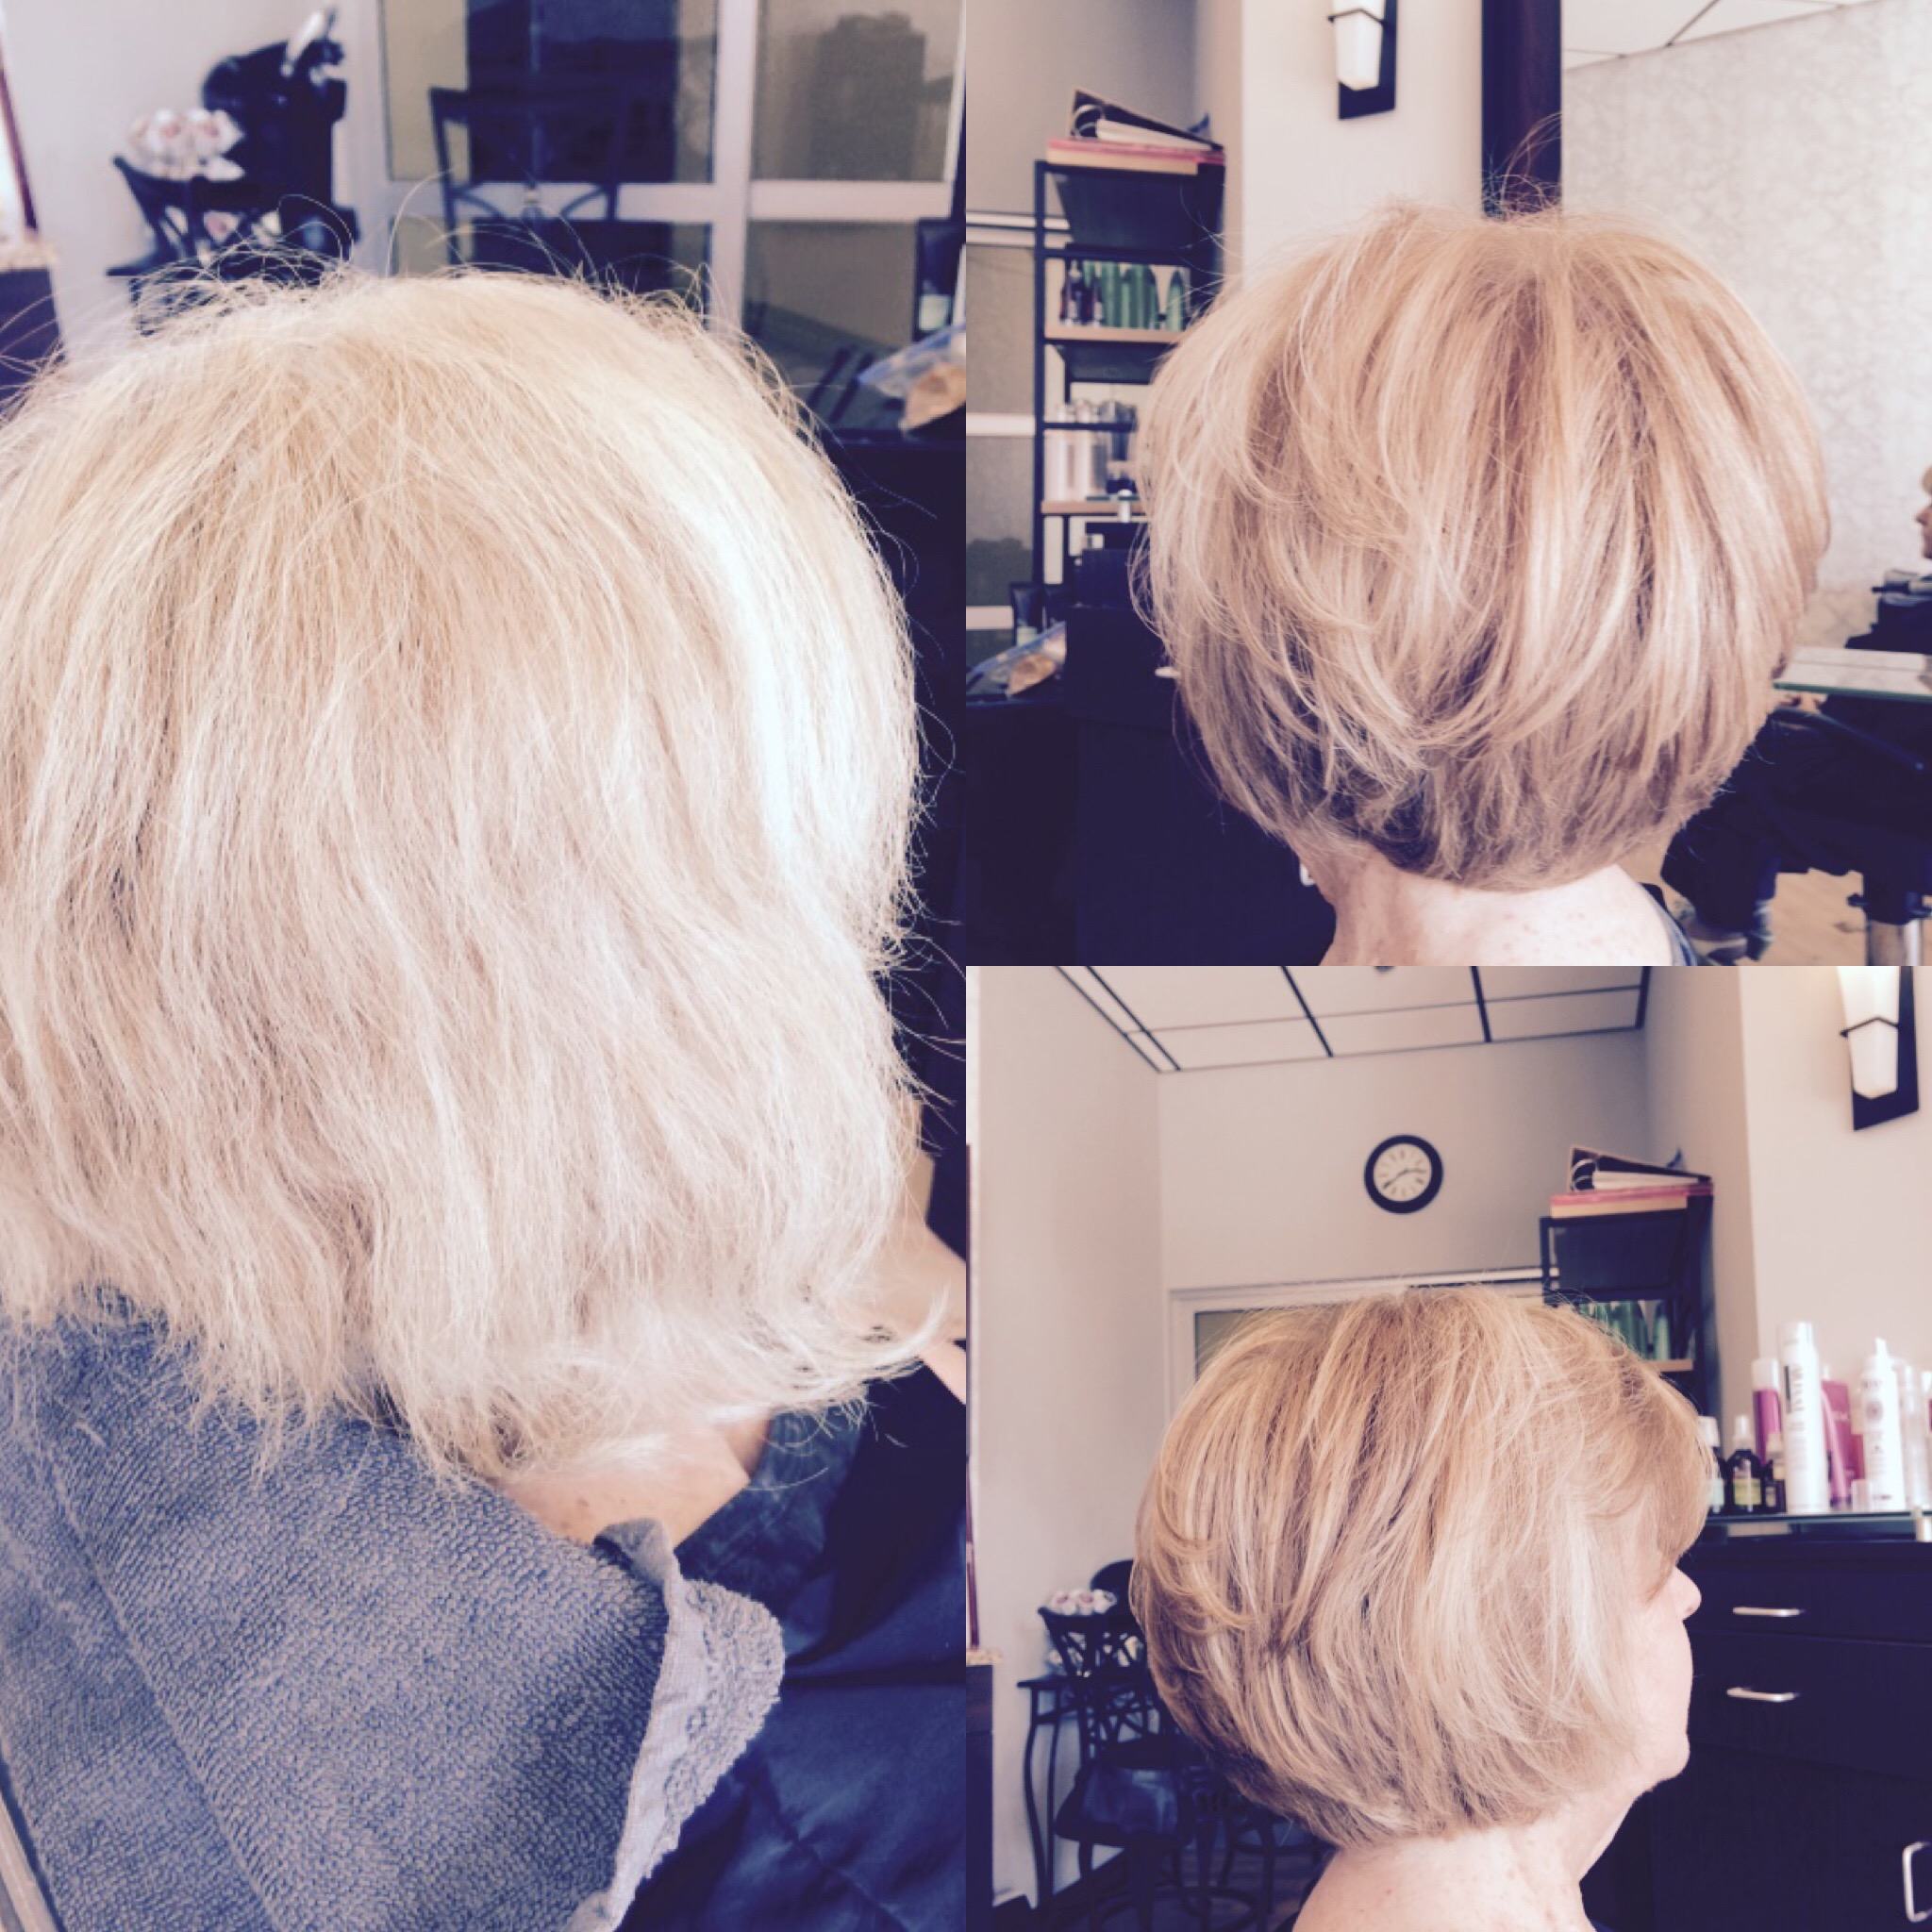 Clyde at Sachi Salon – Your 5-Star Hair Stylist in Scottsdale